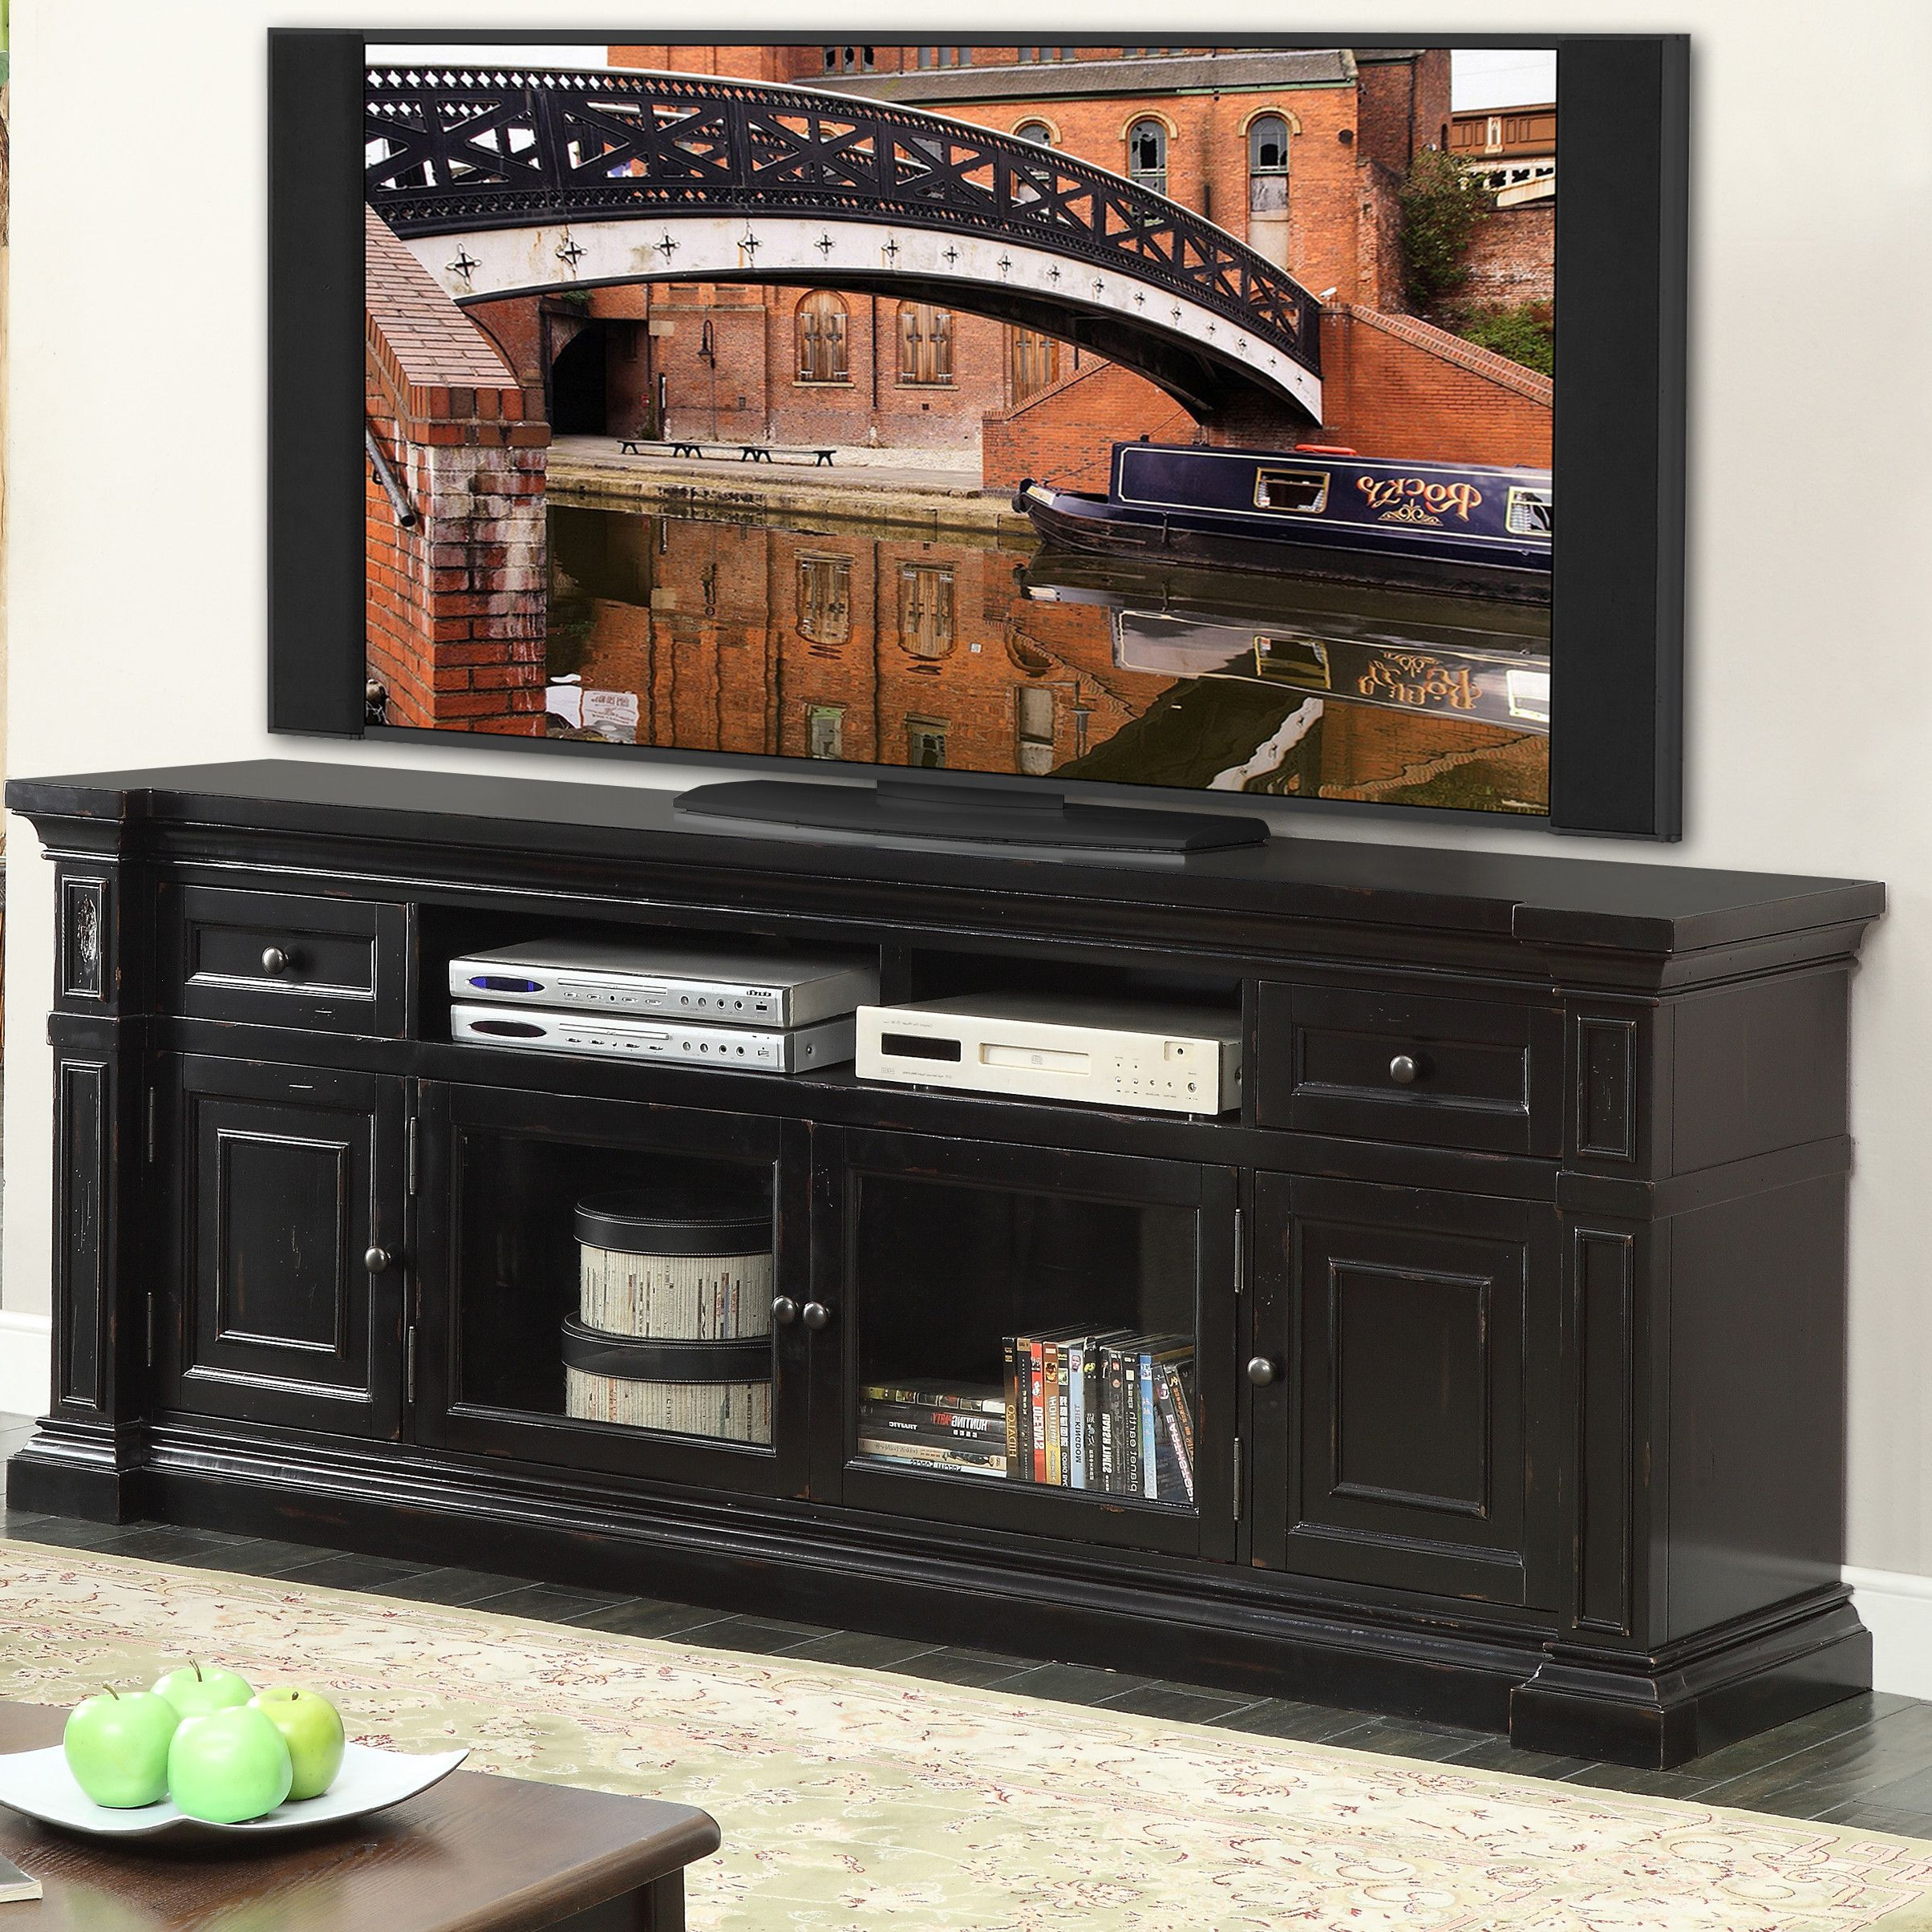 Stotts Tv Stand For Tvs Up To 75"